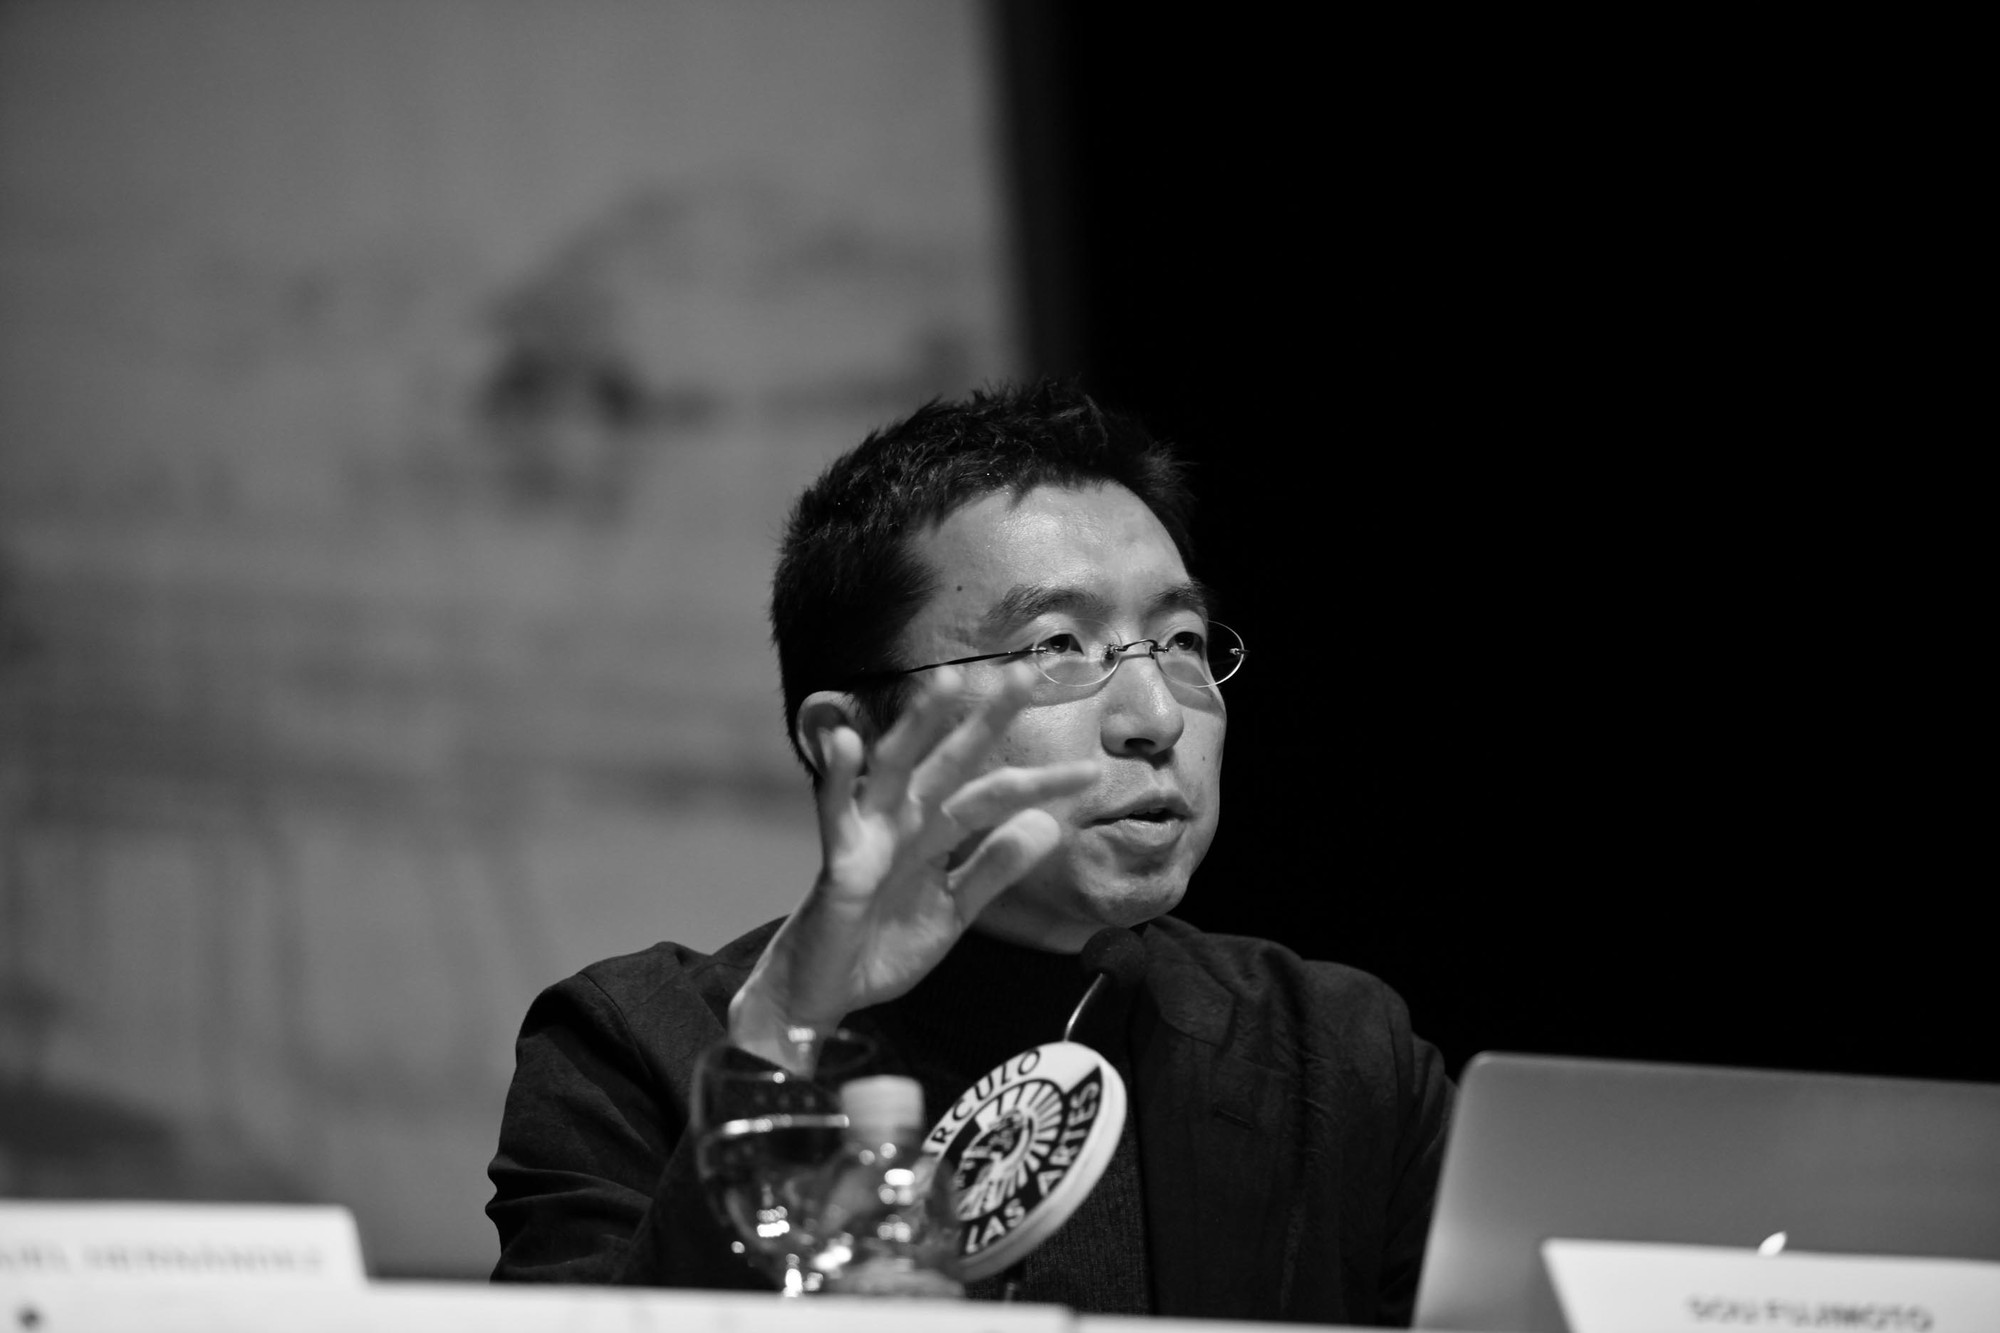 EVOLVING IDEAS: Primitive Future / Sou Fujimoto, Courtesy of IE School of Architecture and Design